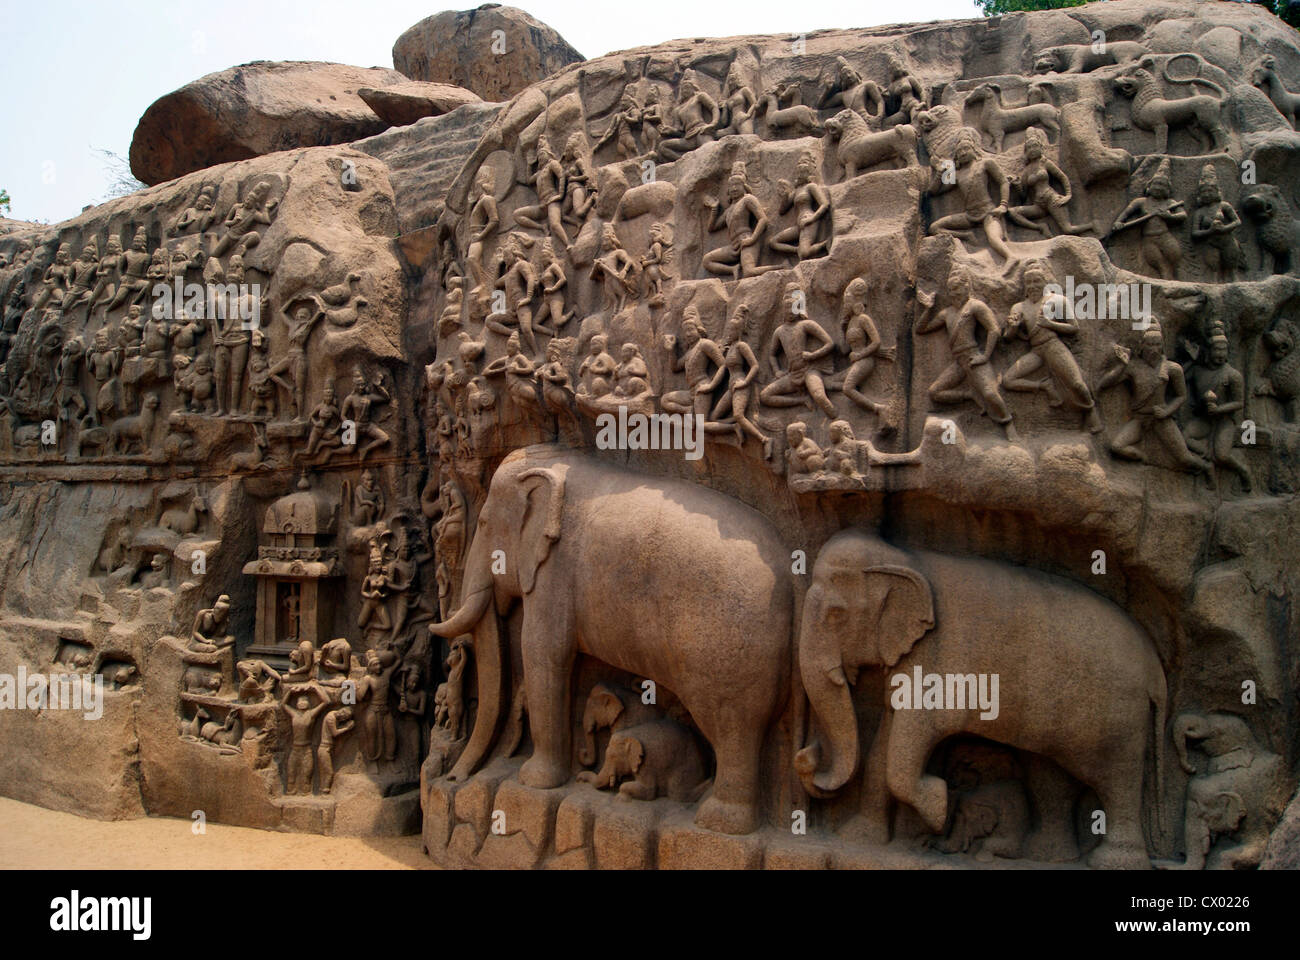 Arjuna penance stone carvings in mahabalipuram tamil nadu